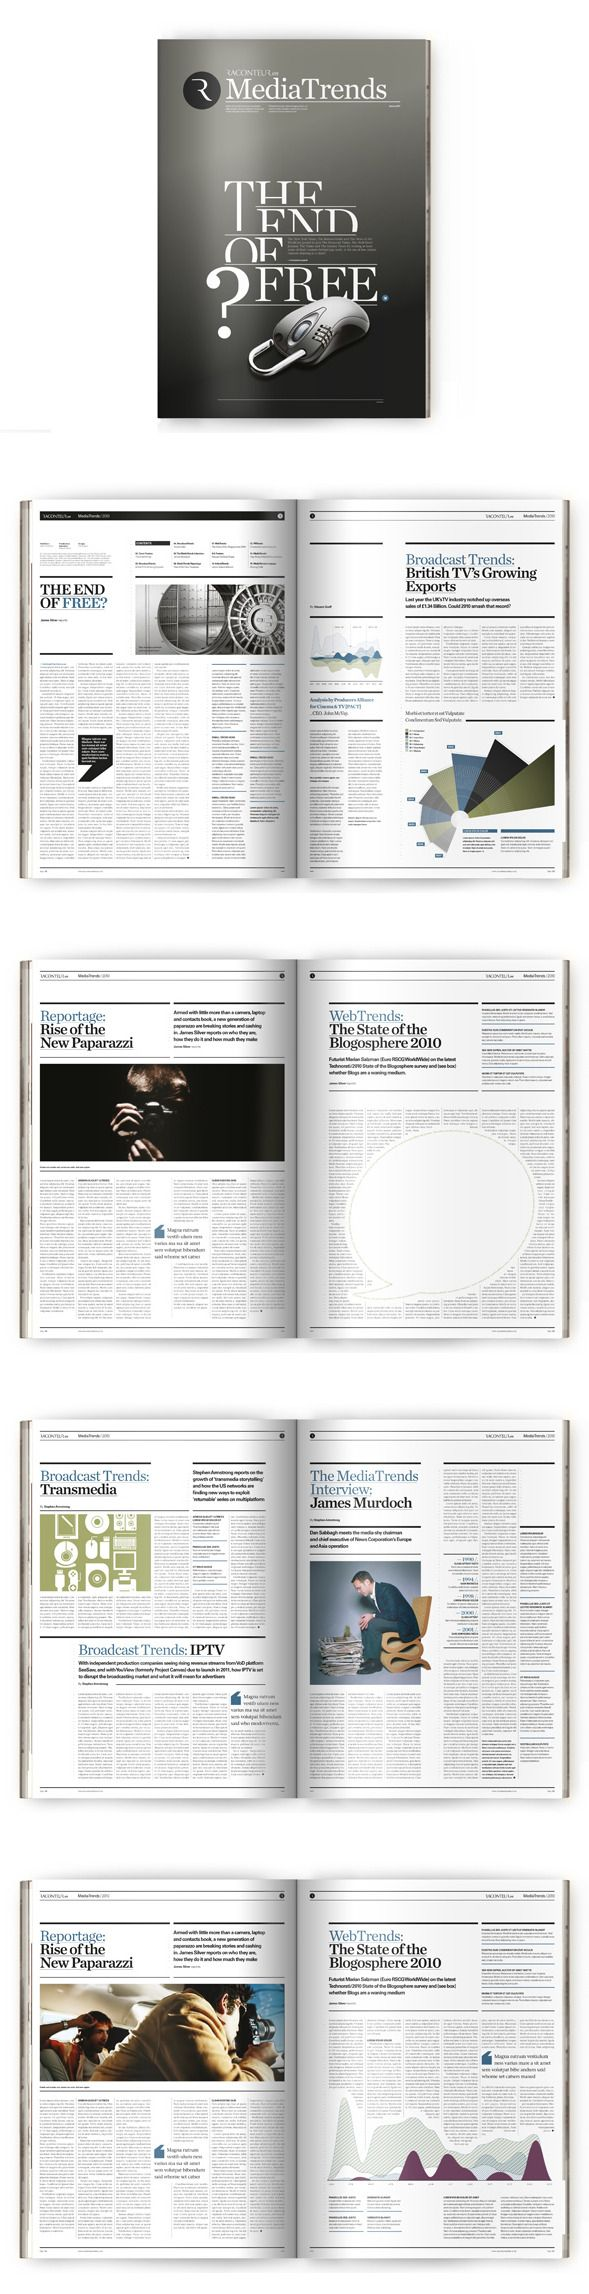 magazine design: MediaTrends by The Design Surgery , via Behance